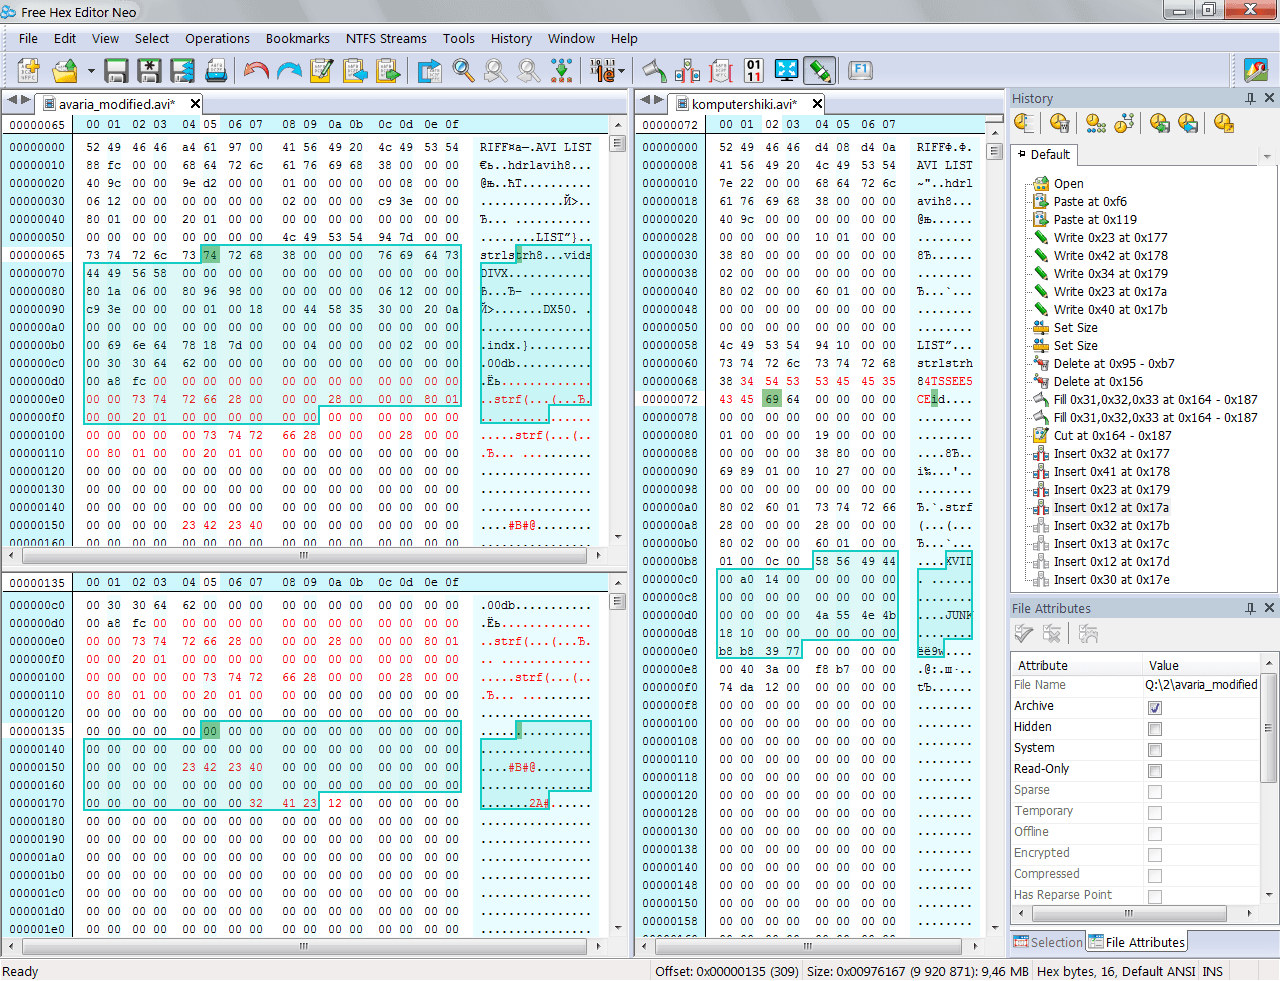 free-hex-full-default-working-space